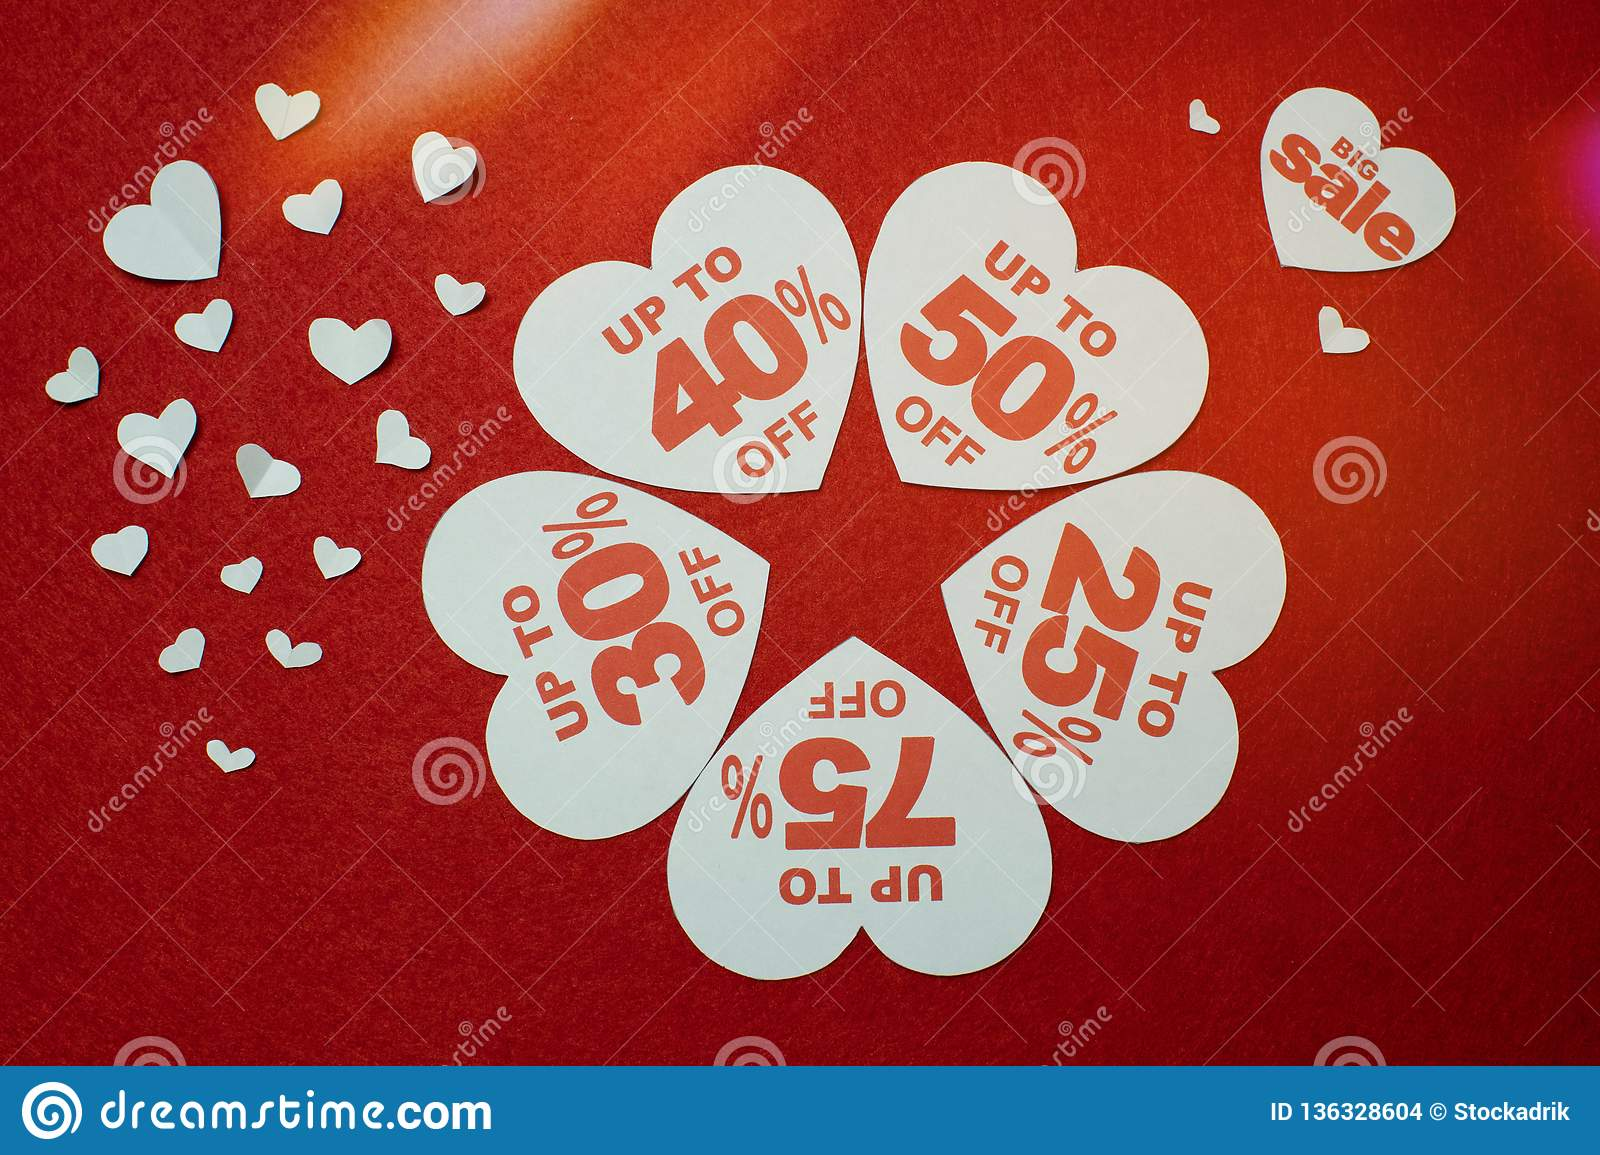 White hearts shaped sales promotion tag against a red background